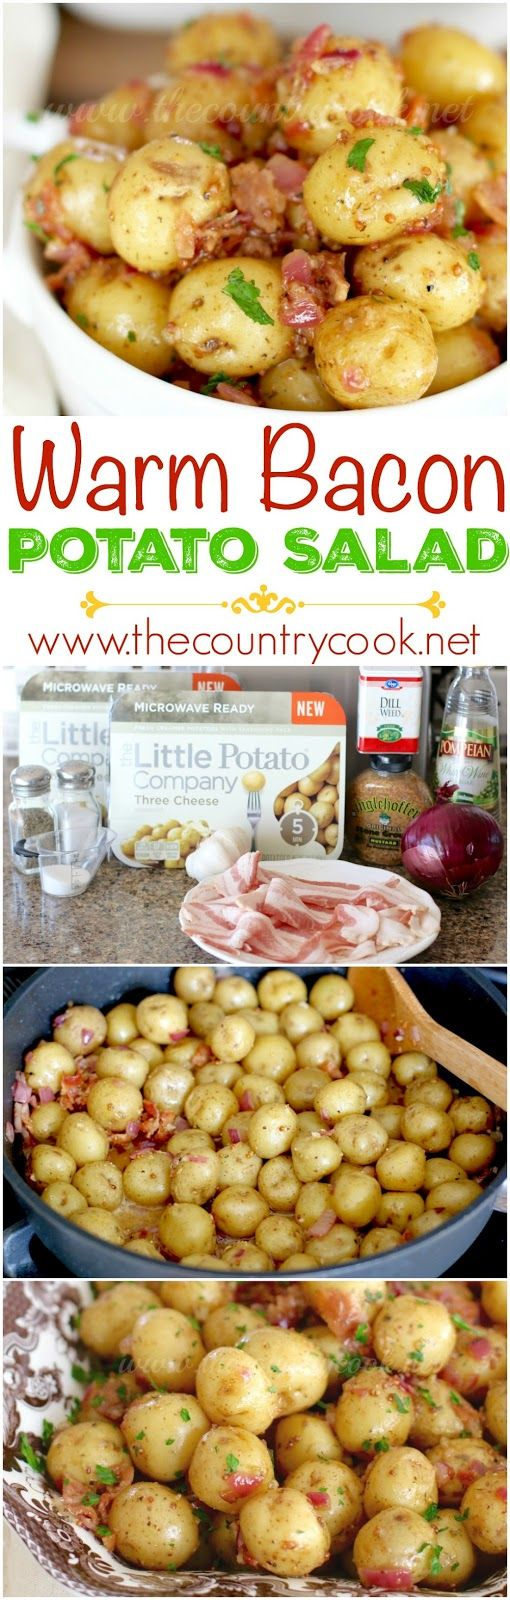 Warm Bacon Potato Salad recipe from The Country Cook. It's similar to a German Potato Salad. Perfect for a picnic or BBQ since I don't have to worry about any mayo sitting out. I love the dressing on this!